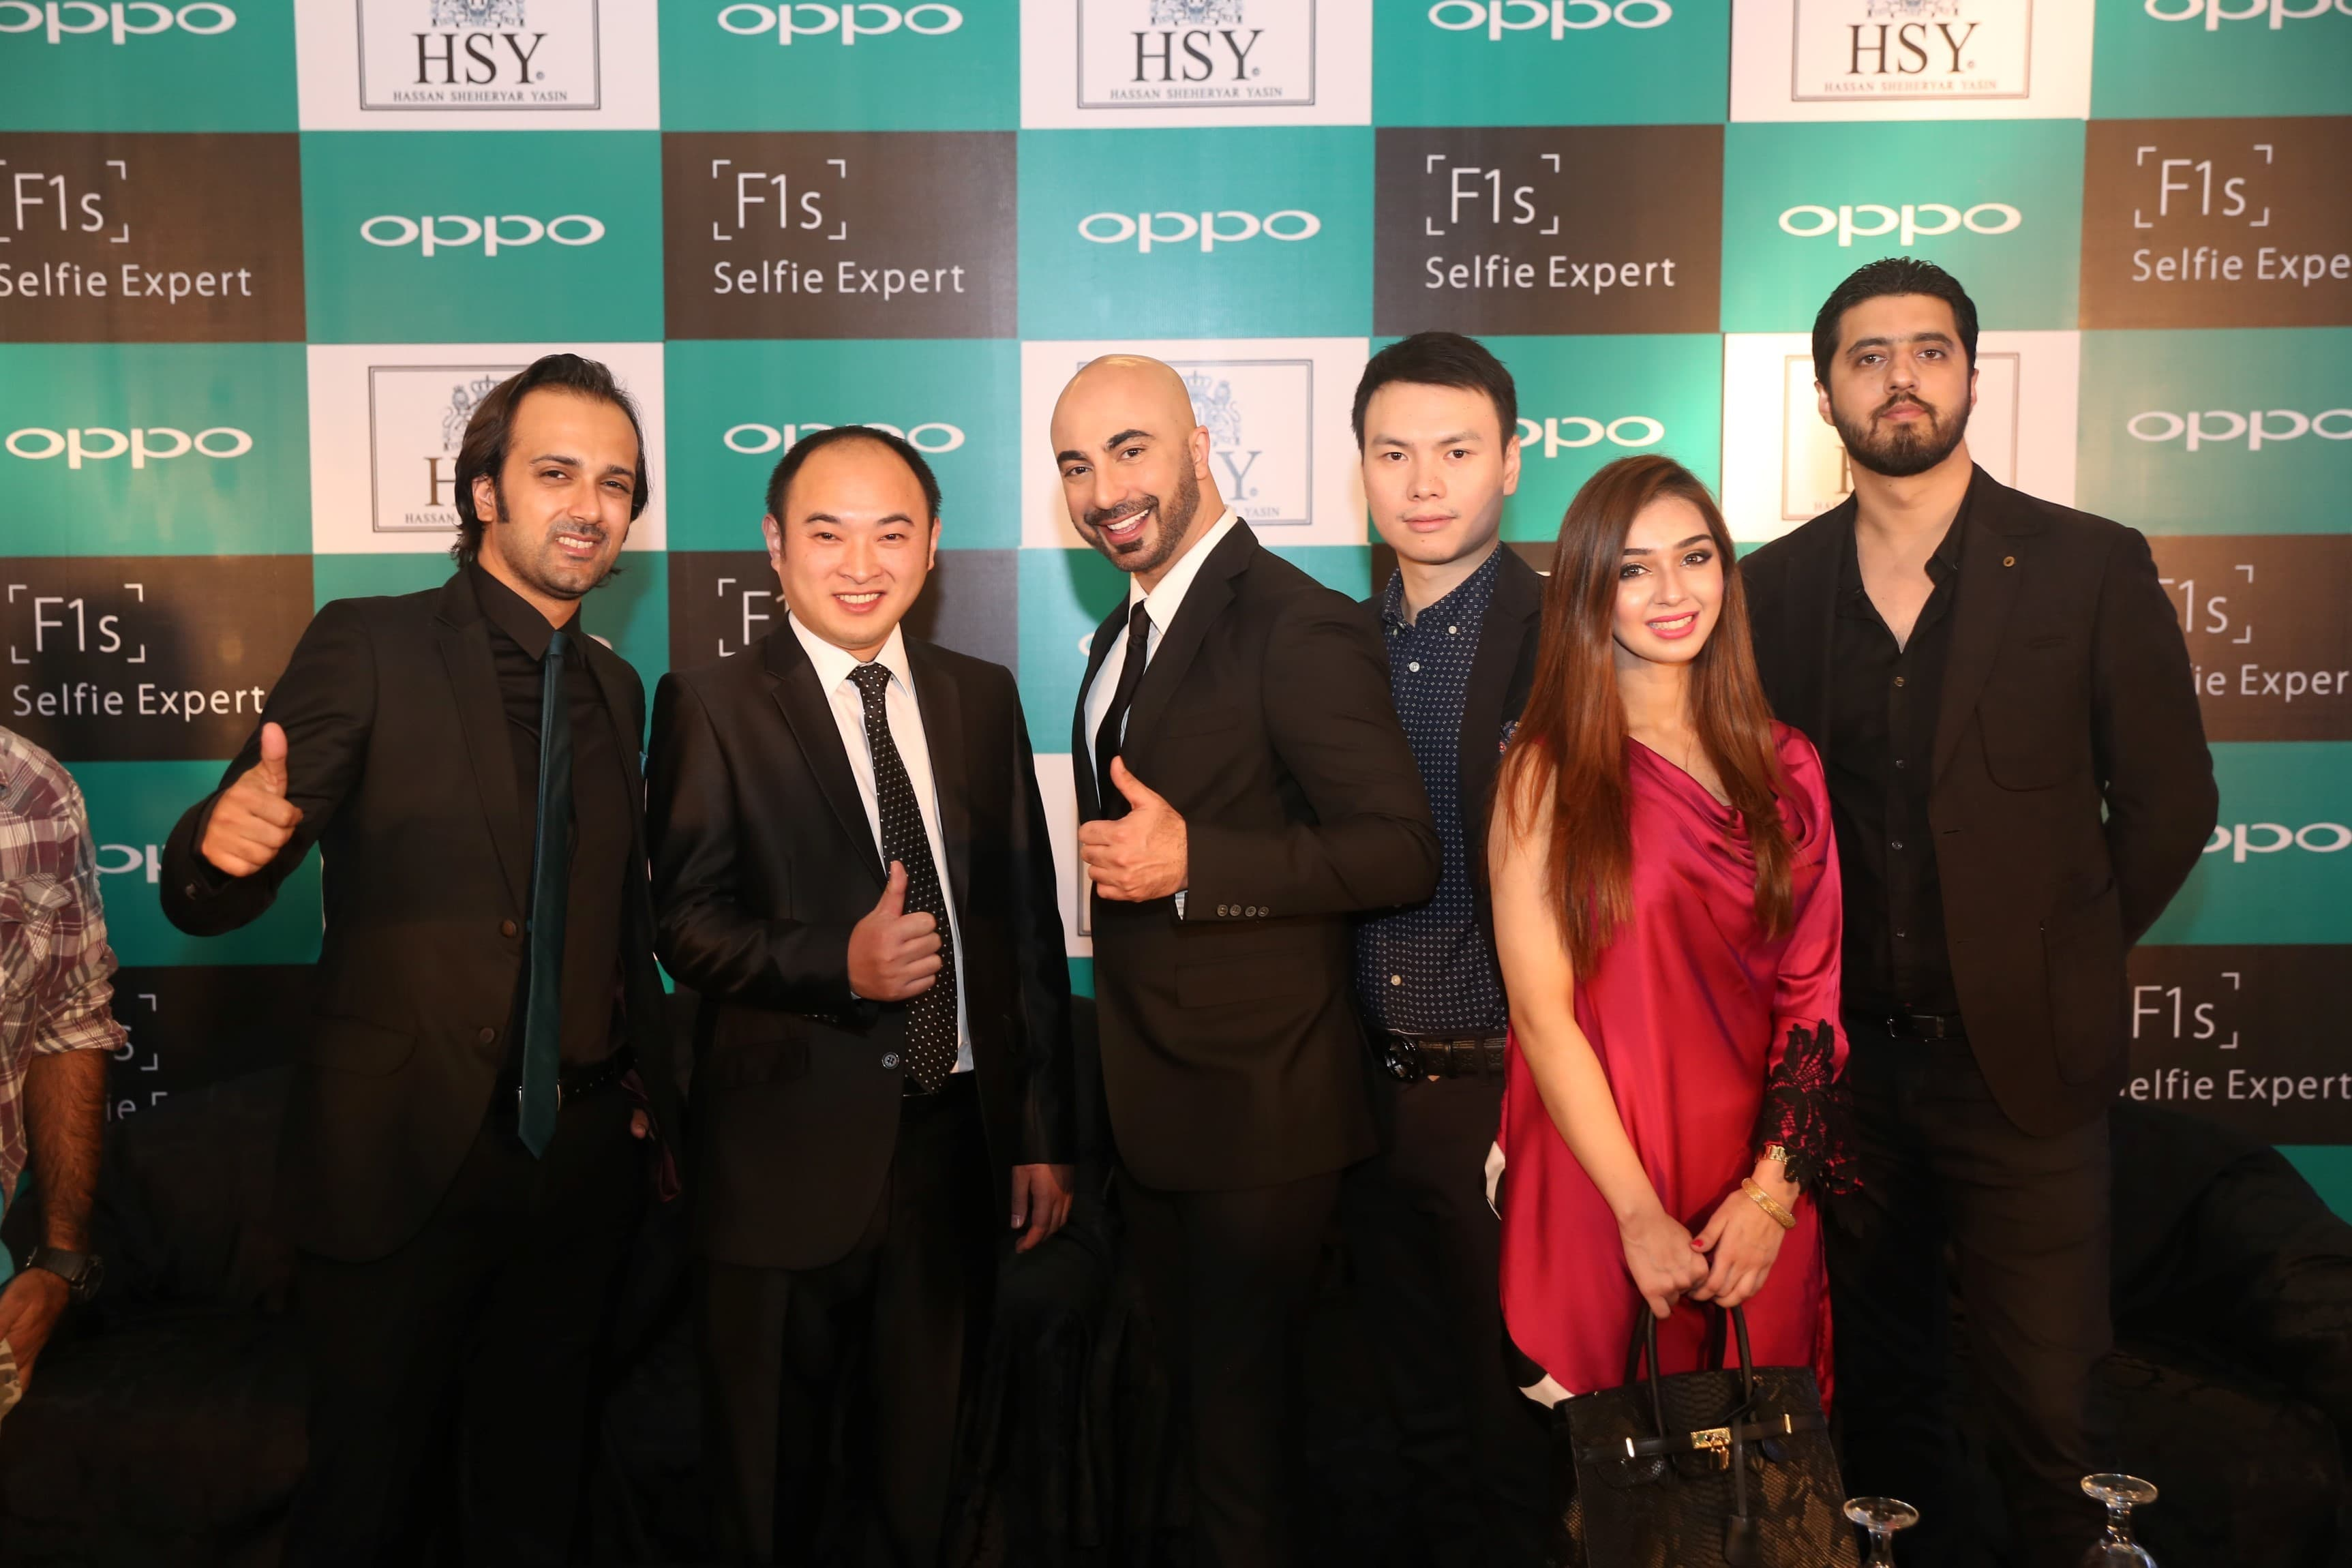 Team OPPO and HSY - Fakhar Abdullah, George Long, HSY, Kevin Hu, Arfa Shahoor and Arsalan Azhar